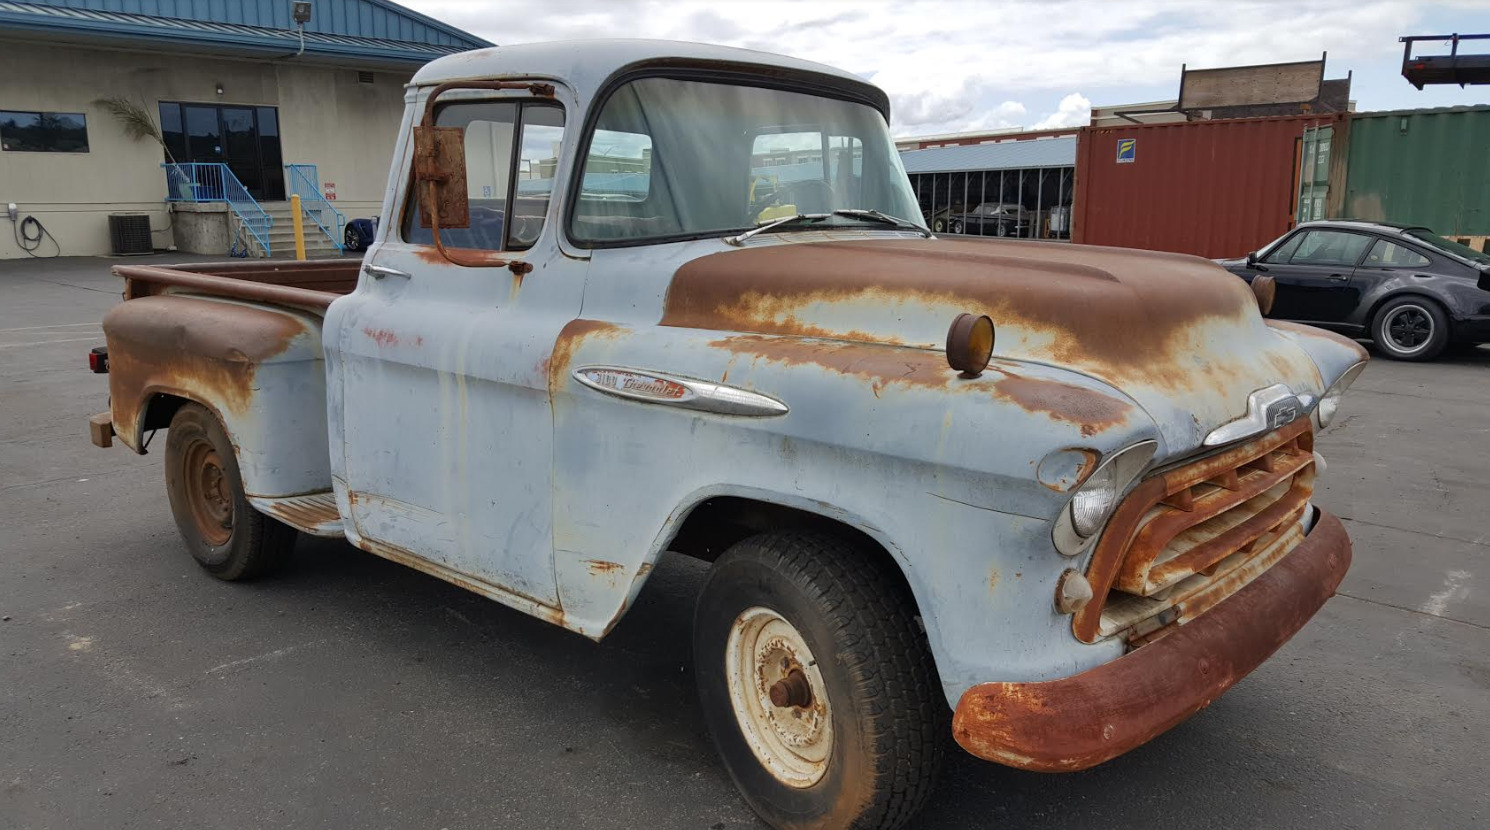 1957 Chevy 3100 Short Bed Half Ton Step Side Truck 1295000 1955 Ford F100 1 Of 9only Available